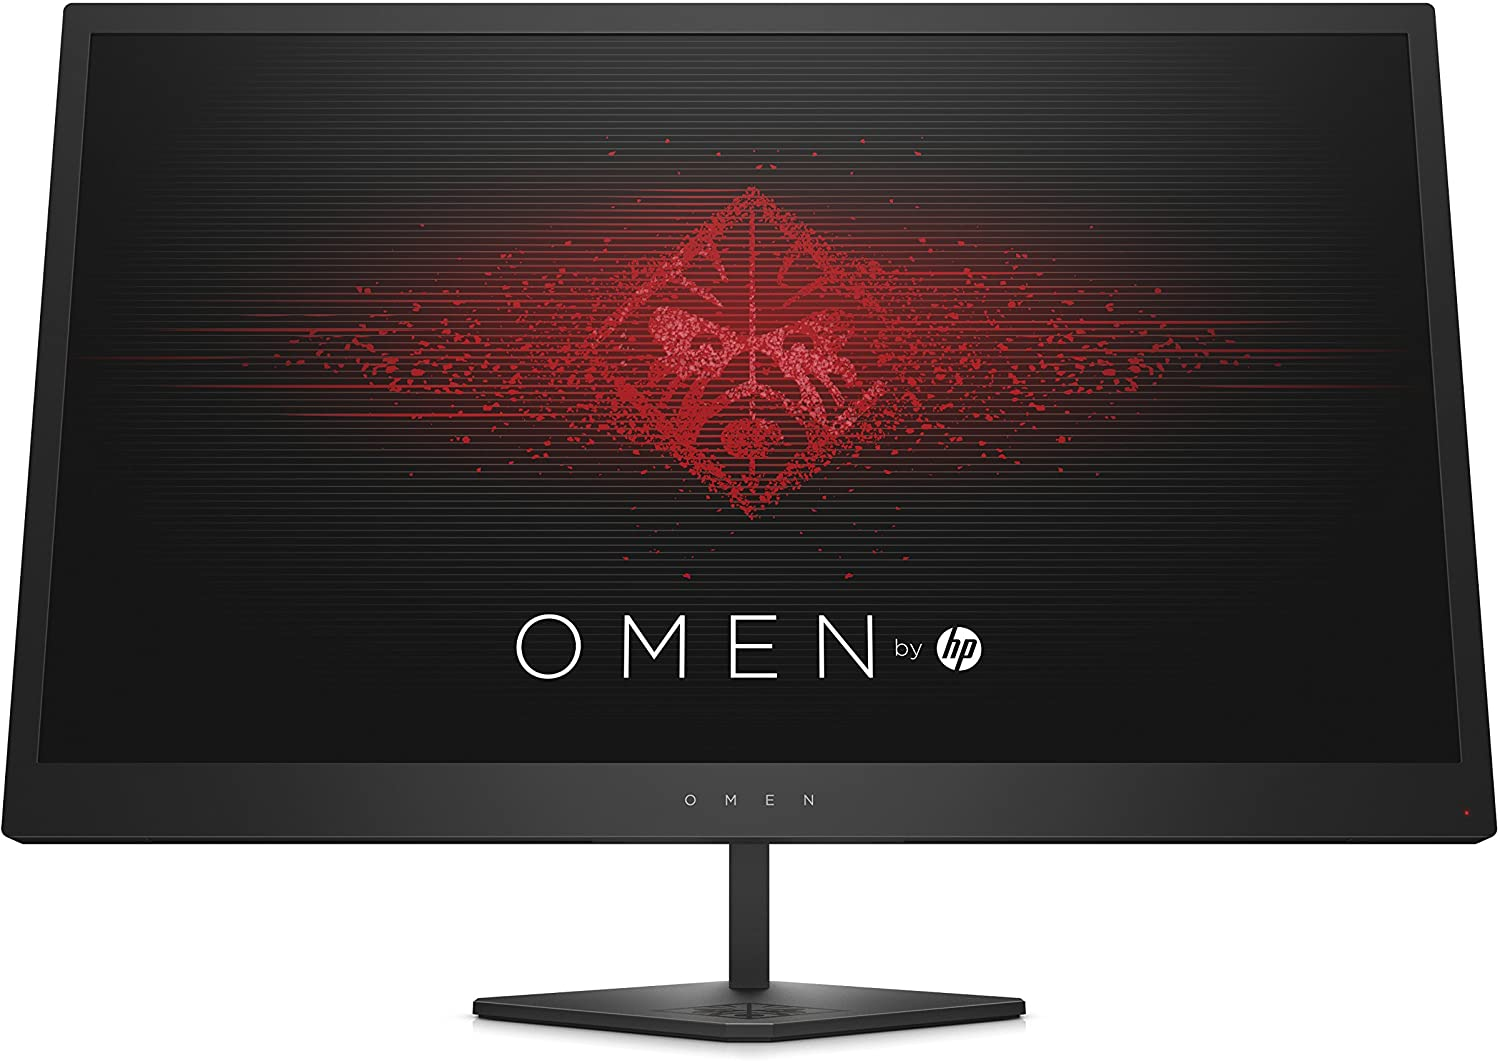 Omen By Hp 25 Inch Fhd Gaming Monitor